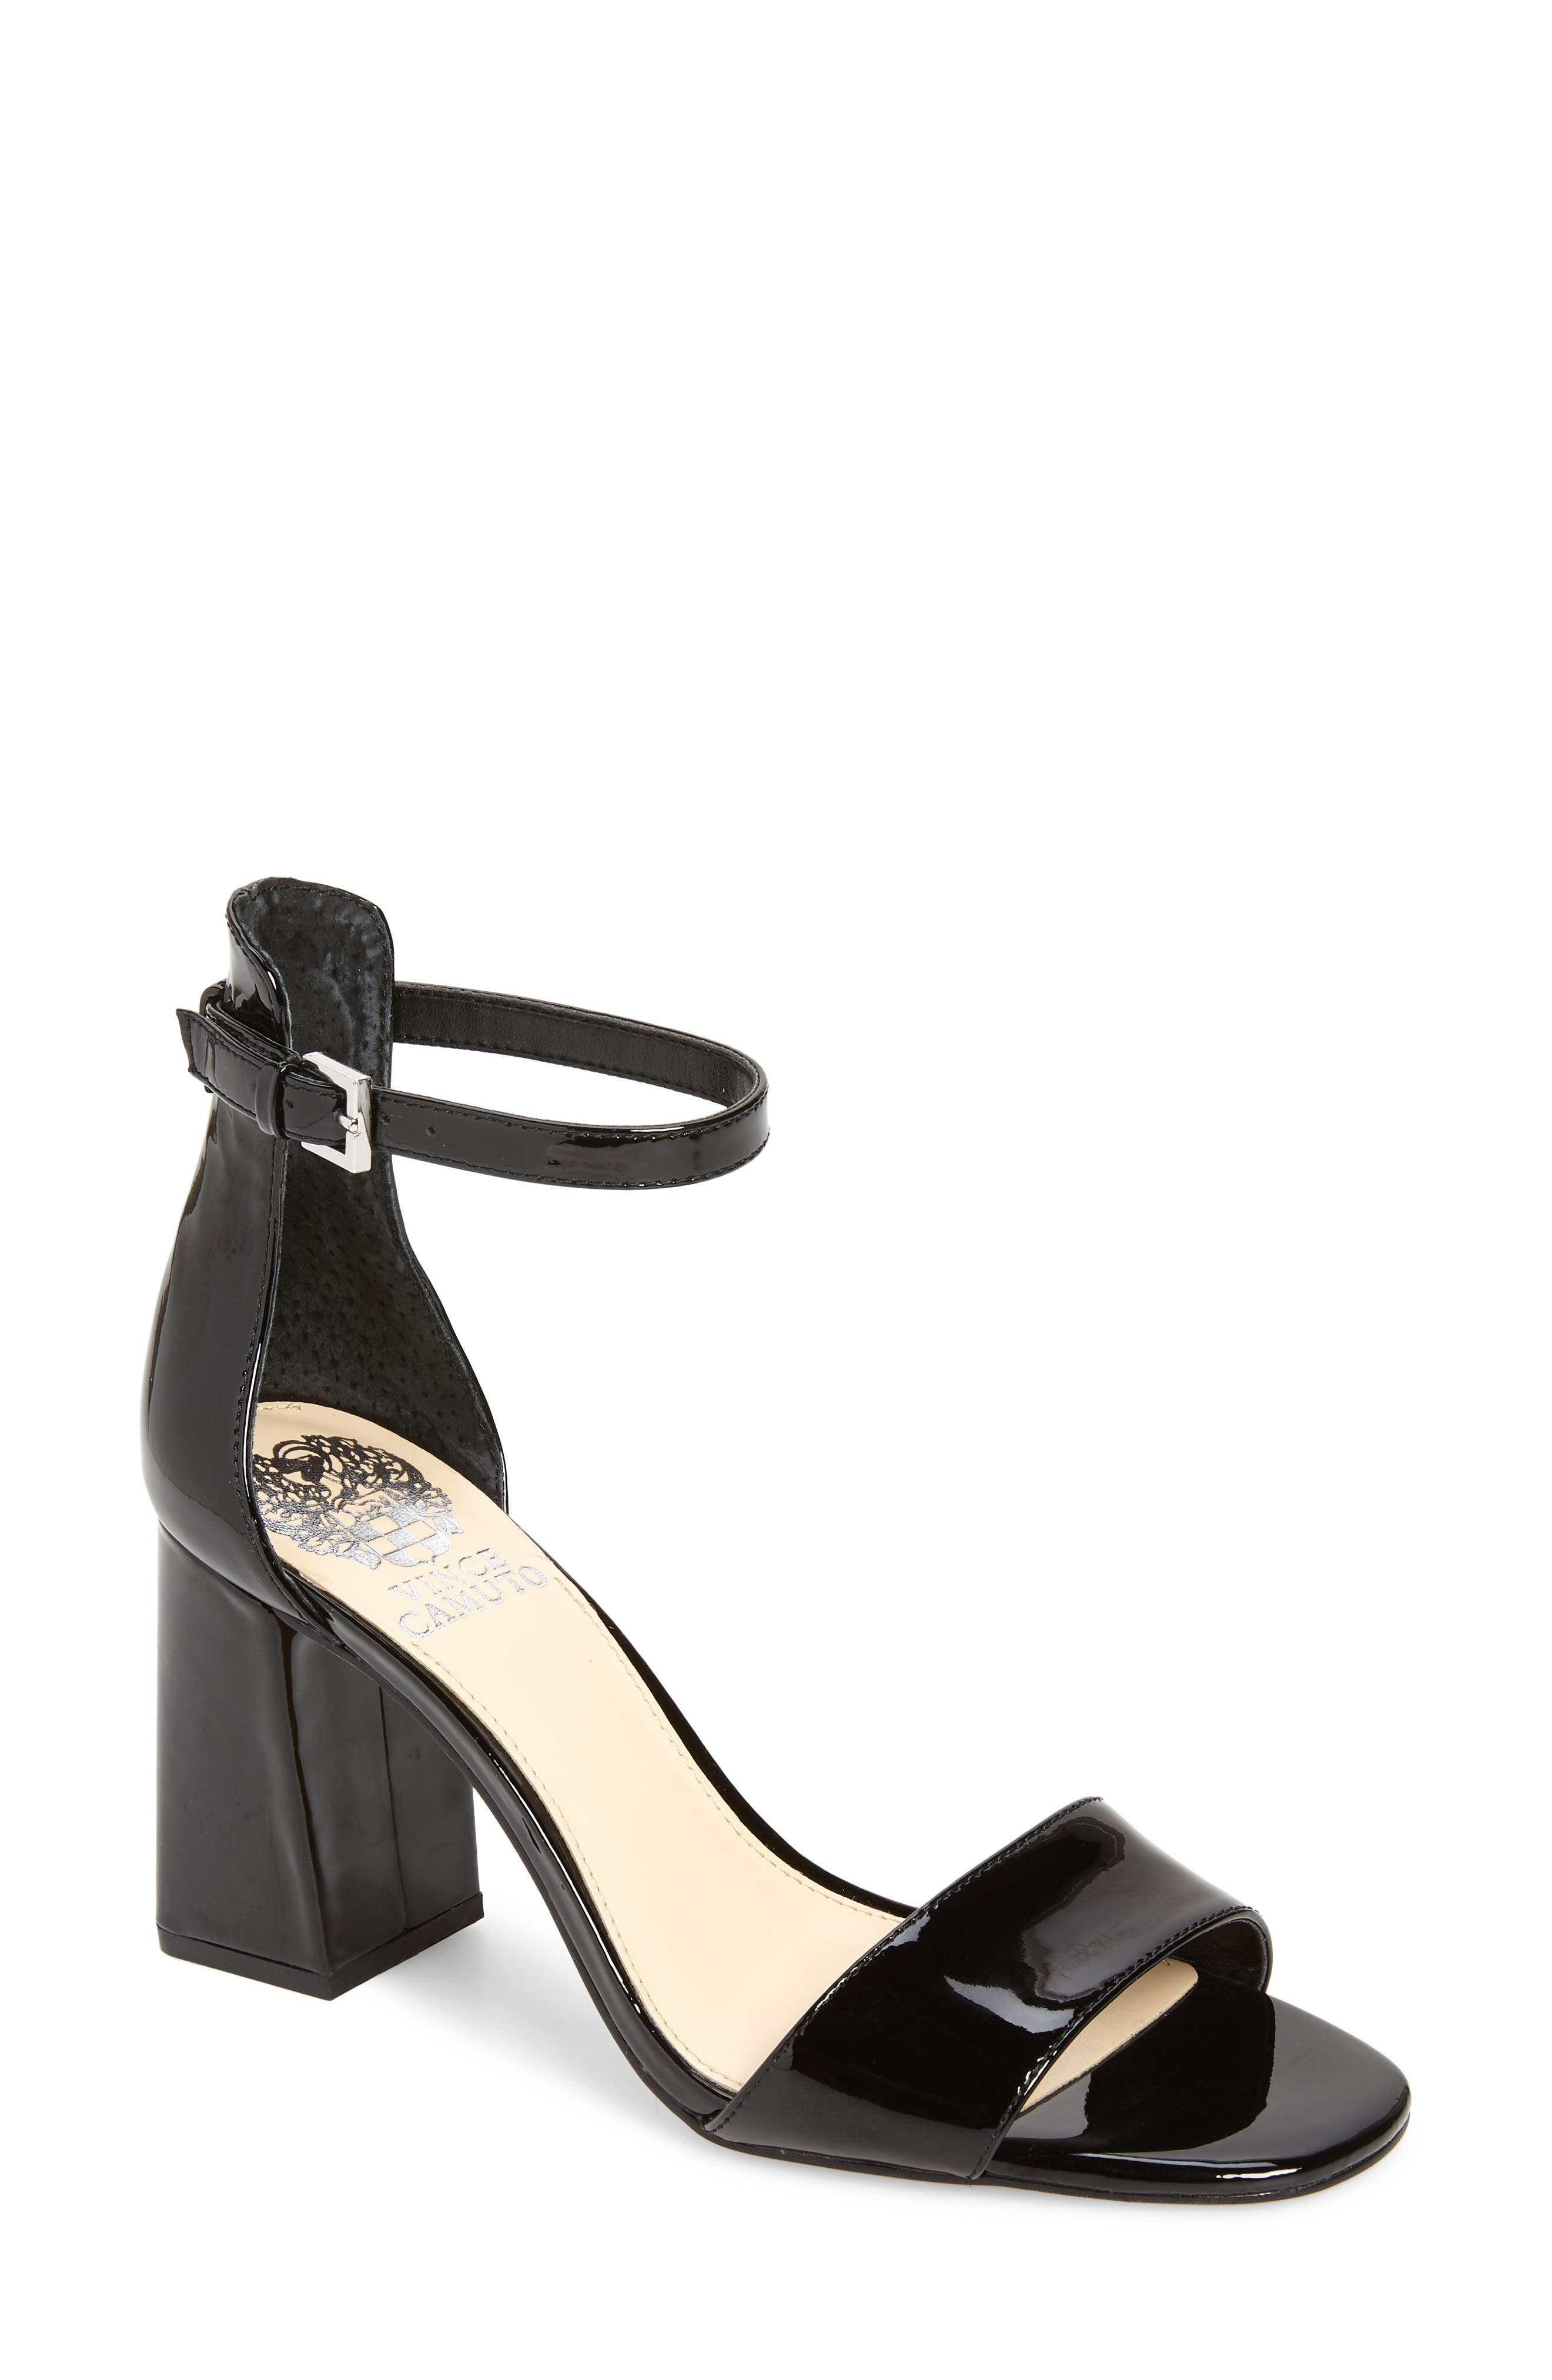 Vince Camuto Slippers Winderly Ankle Strap Sandal